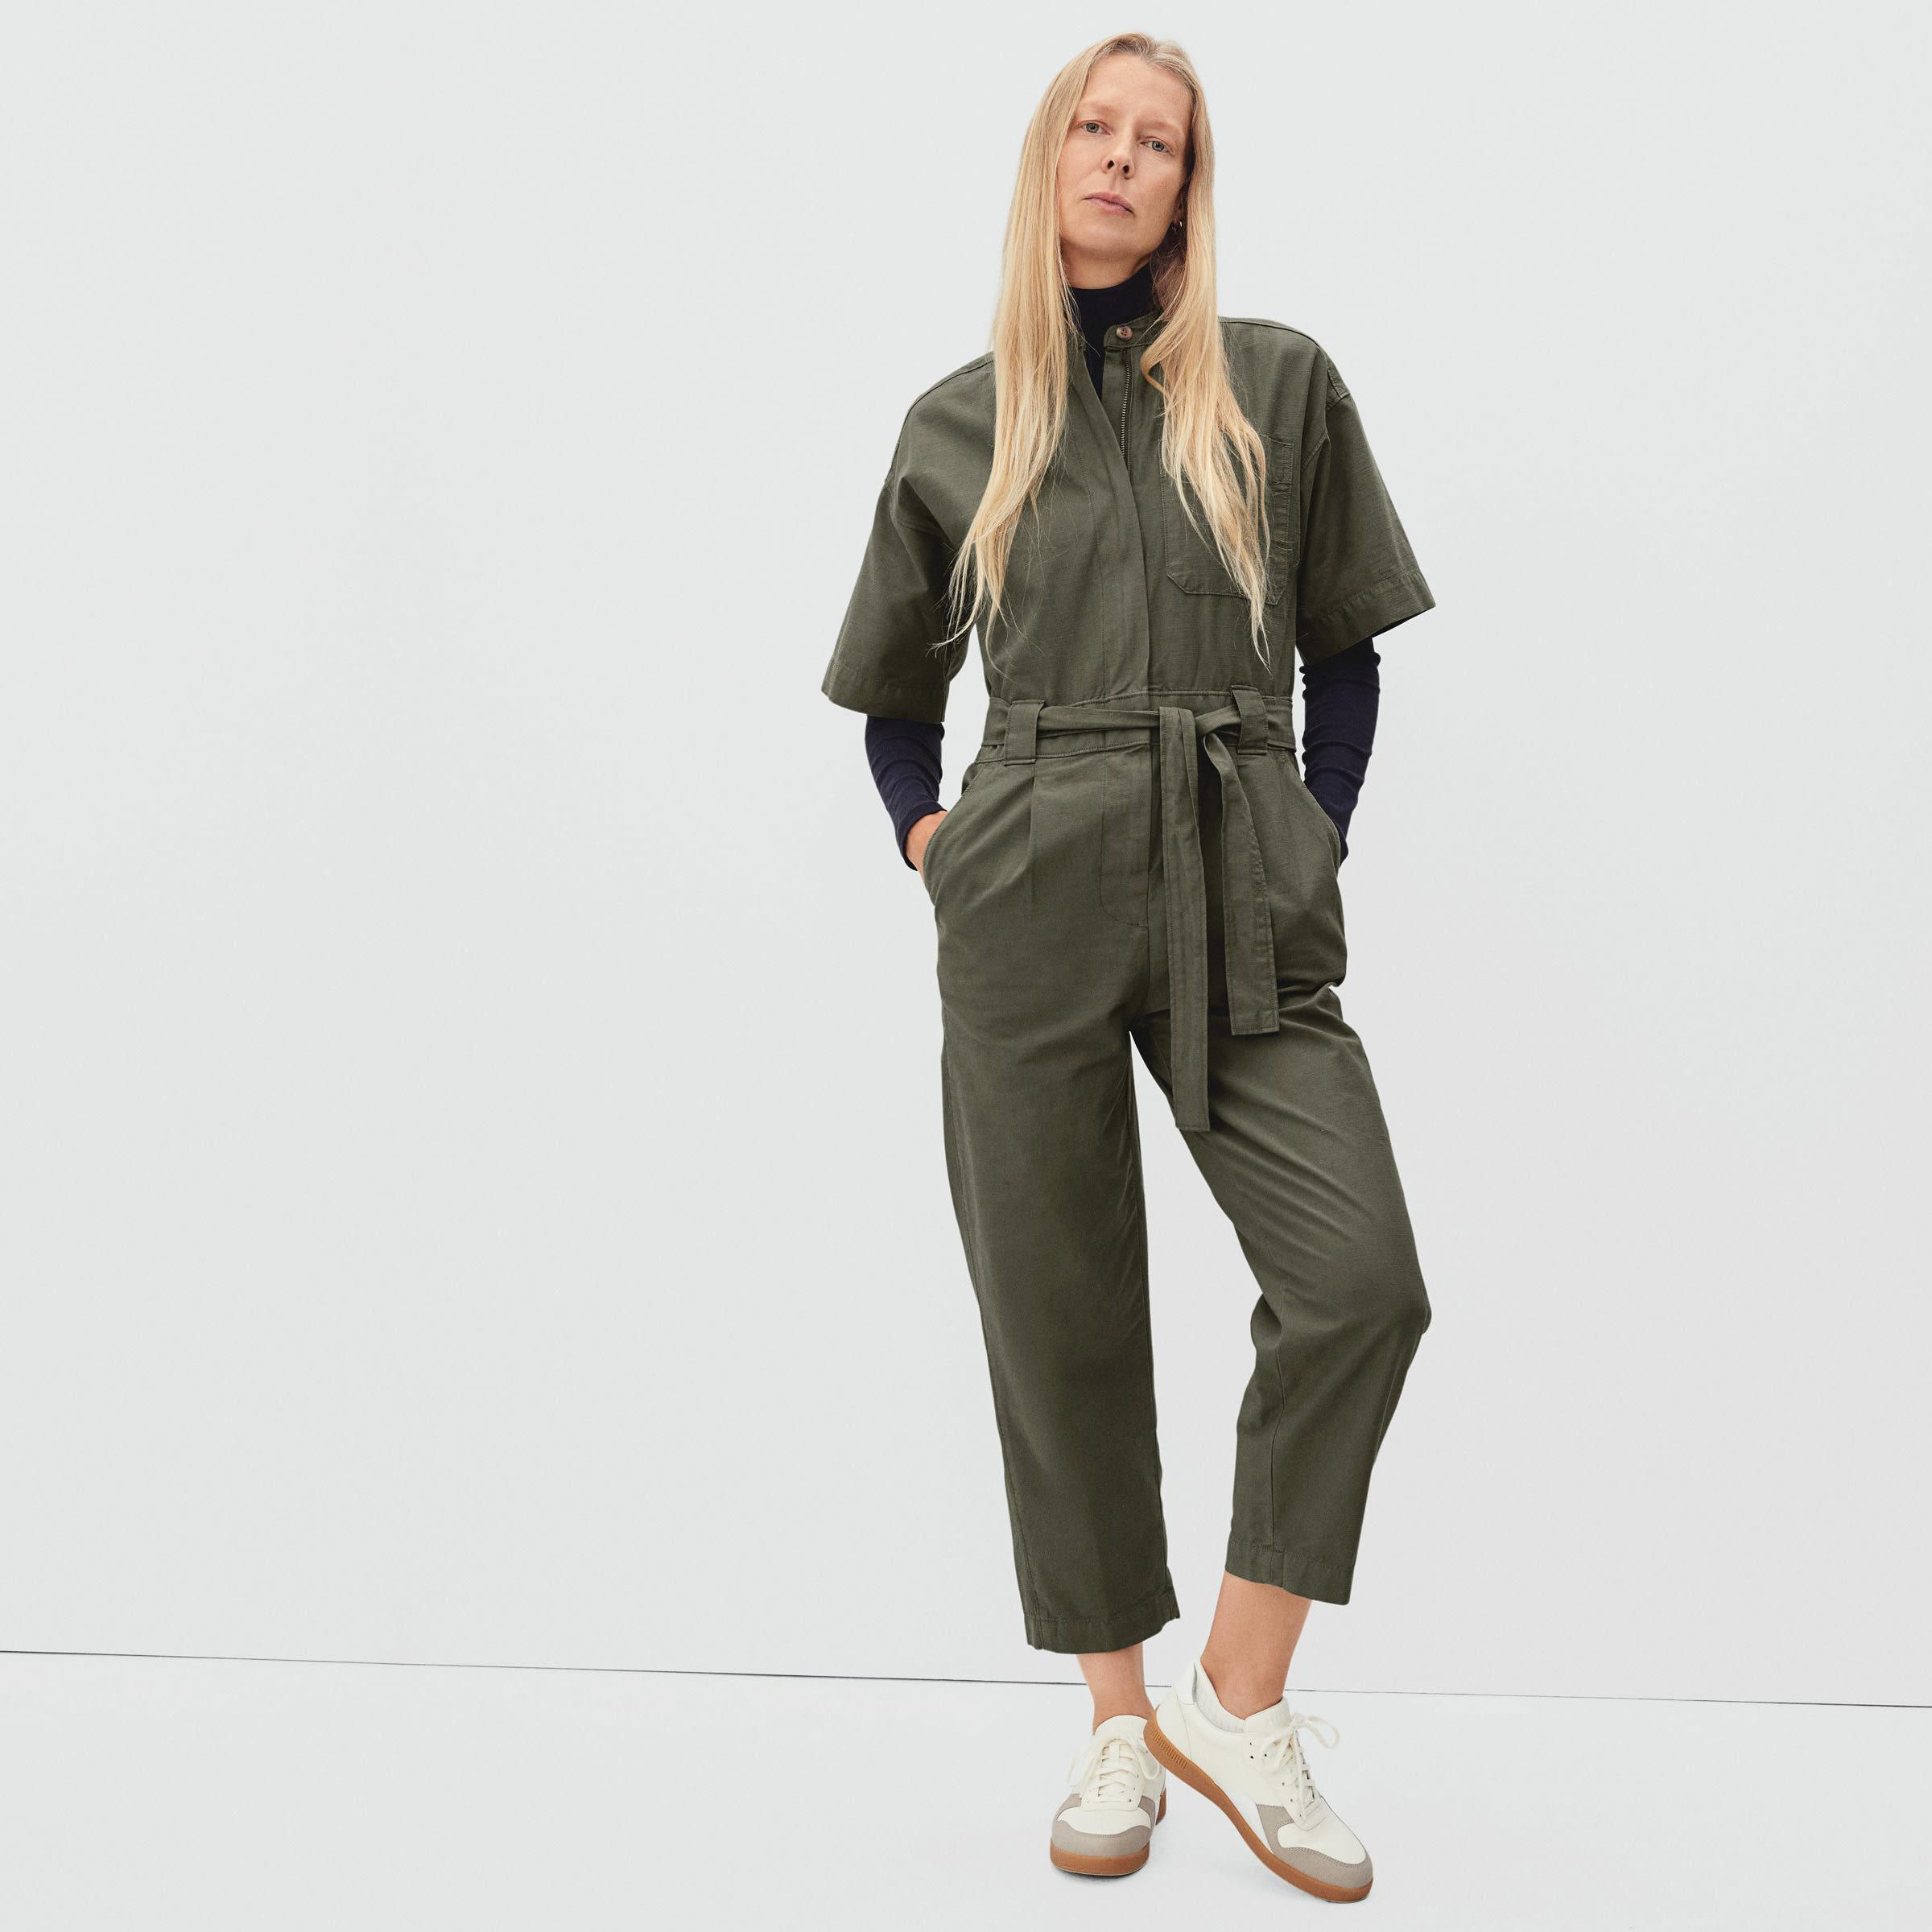 The Fatigue Short-Sleeve Jumpsuit